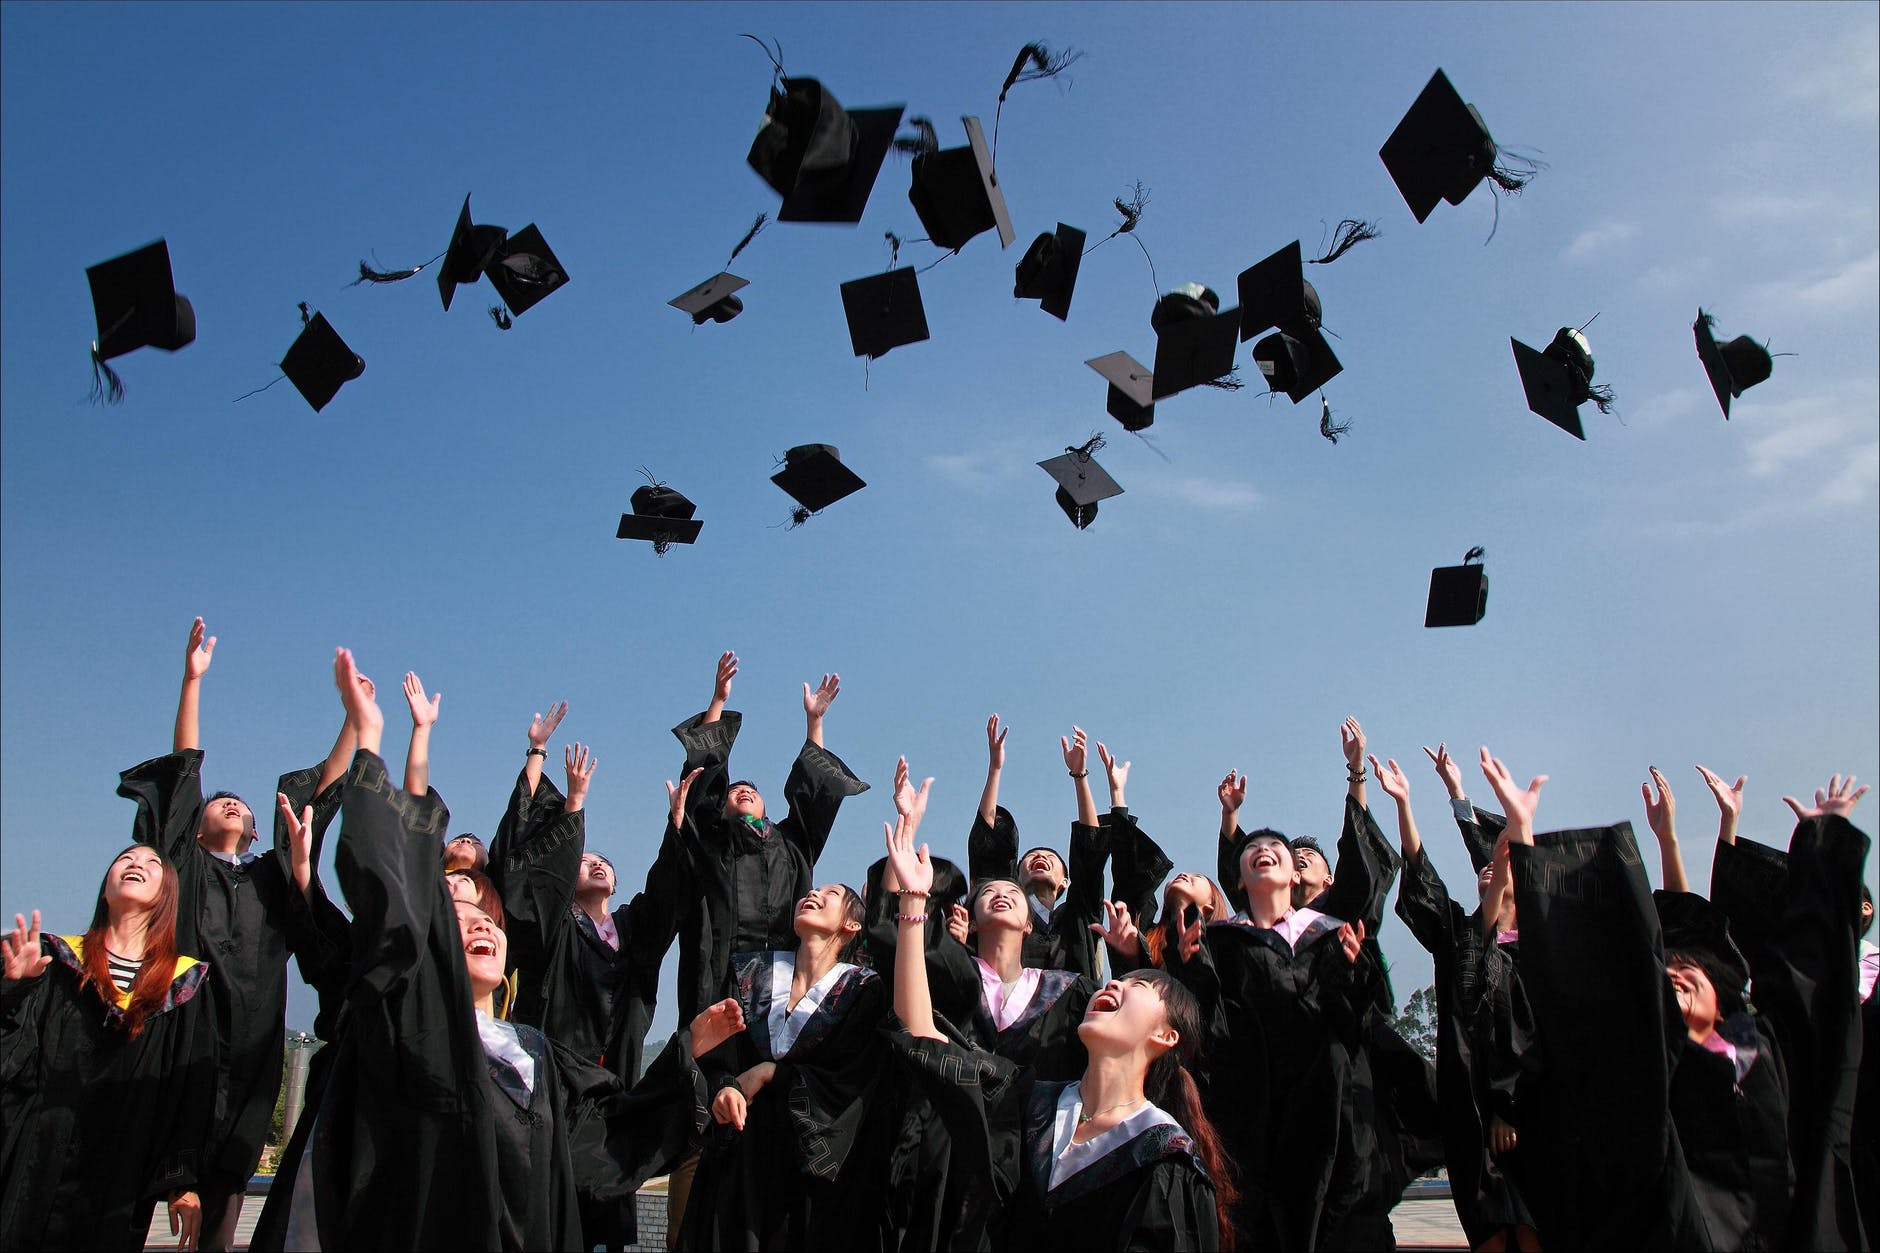 Students throwing hats into air